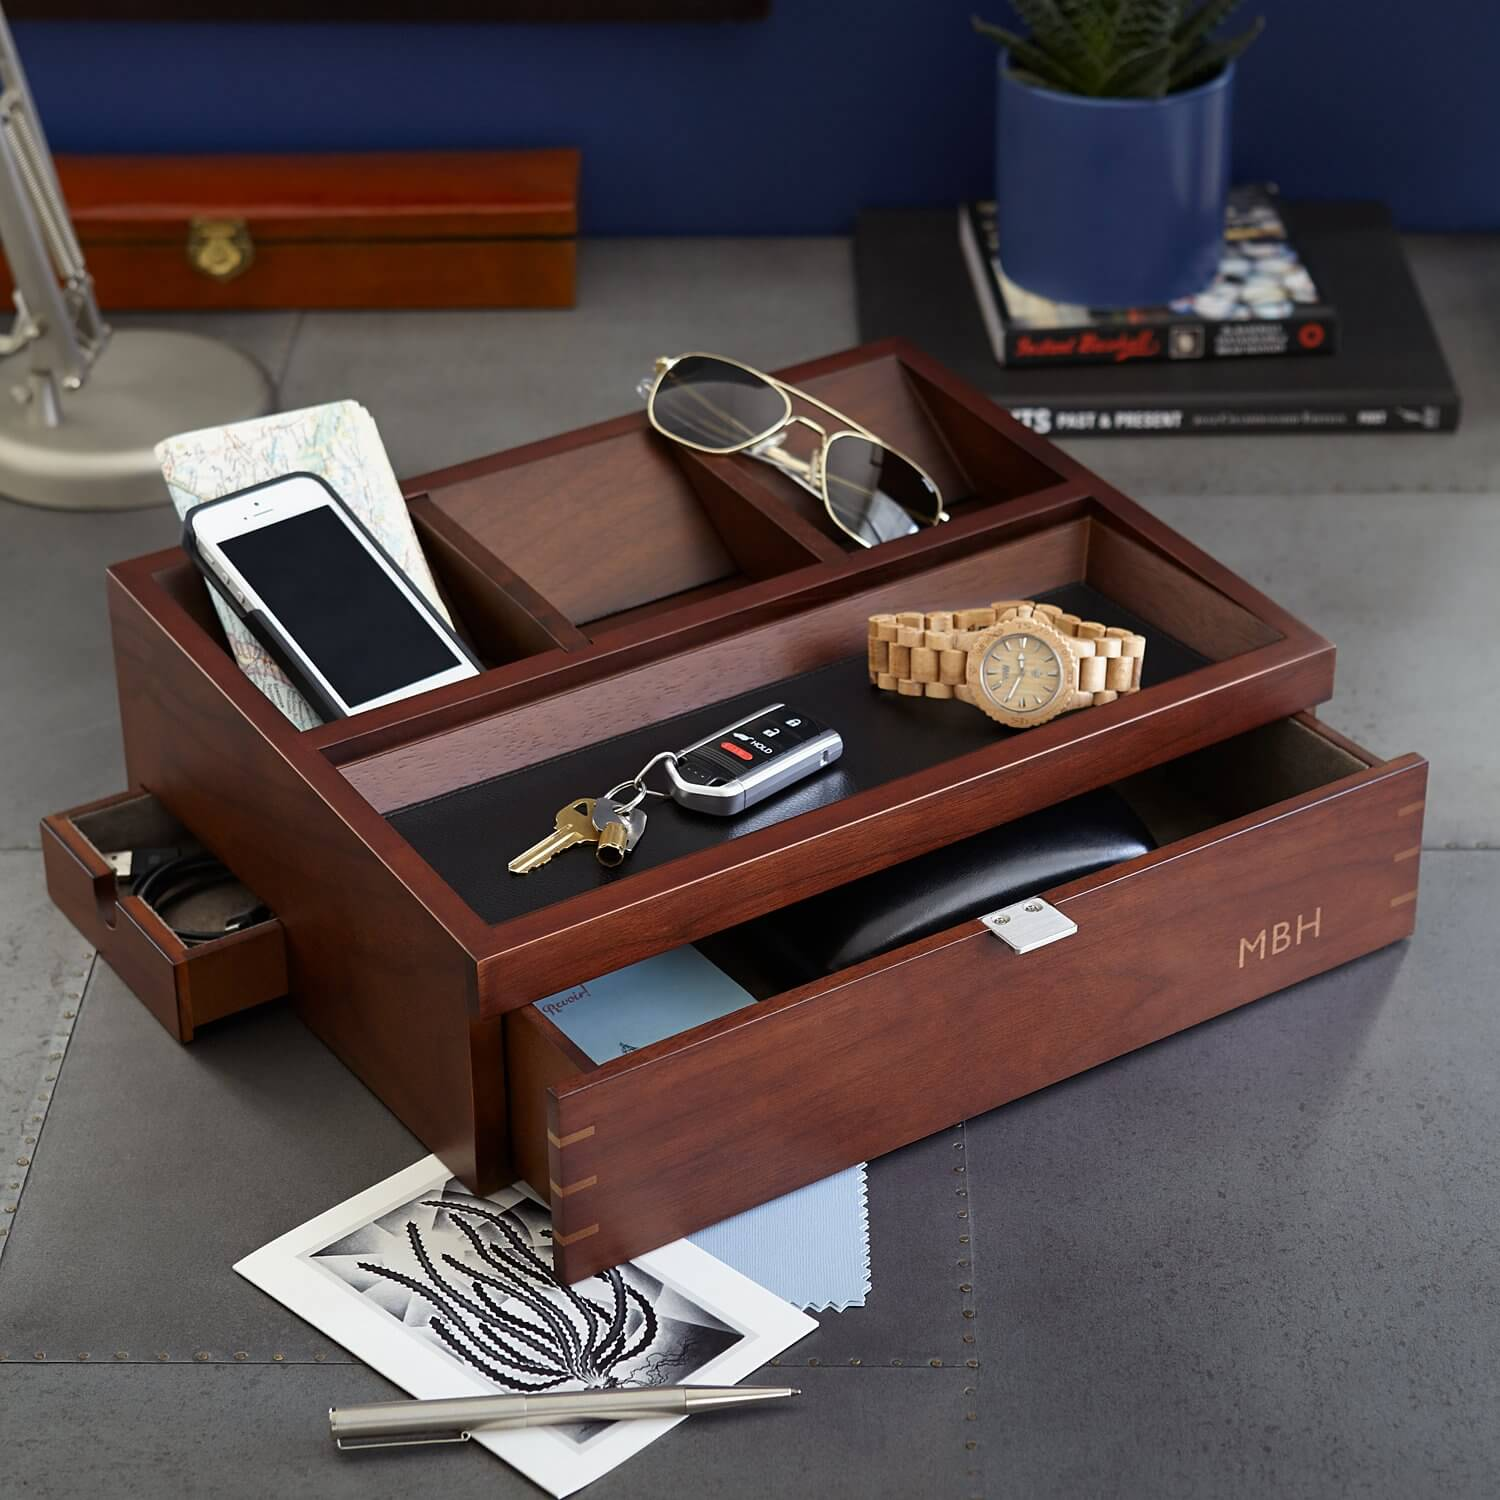 A wooden organizer and accessory charger.